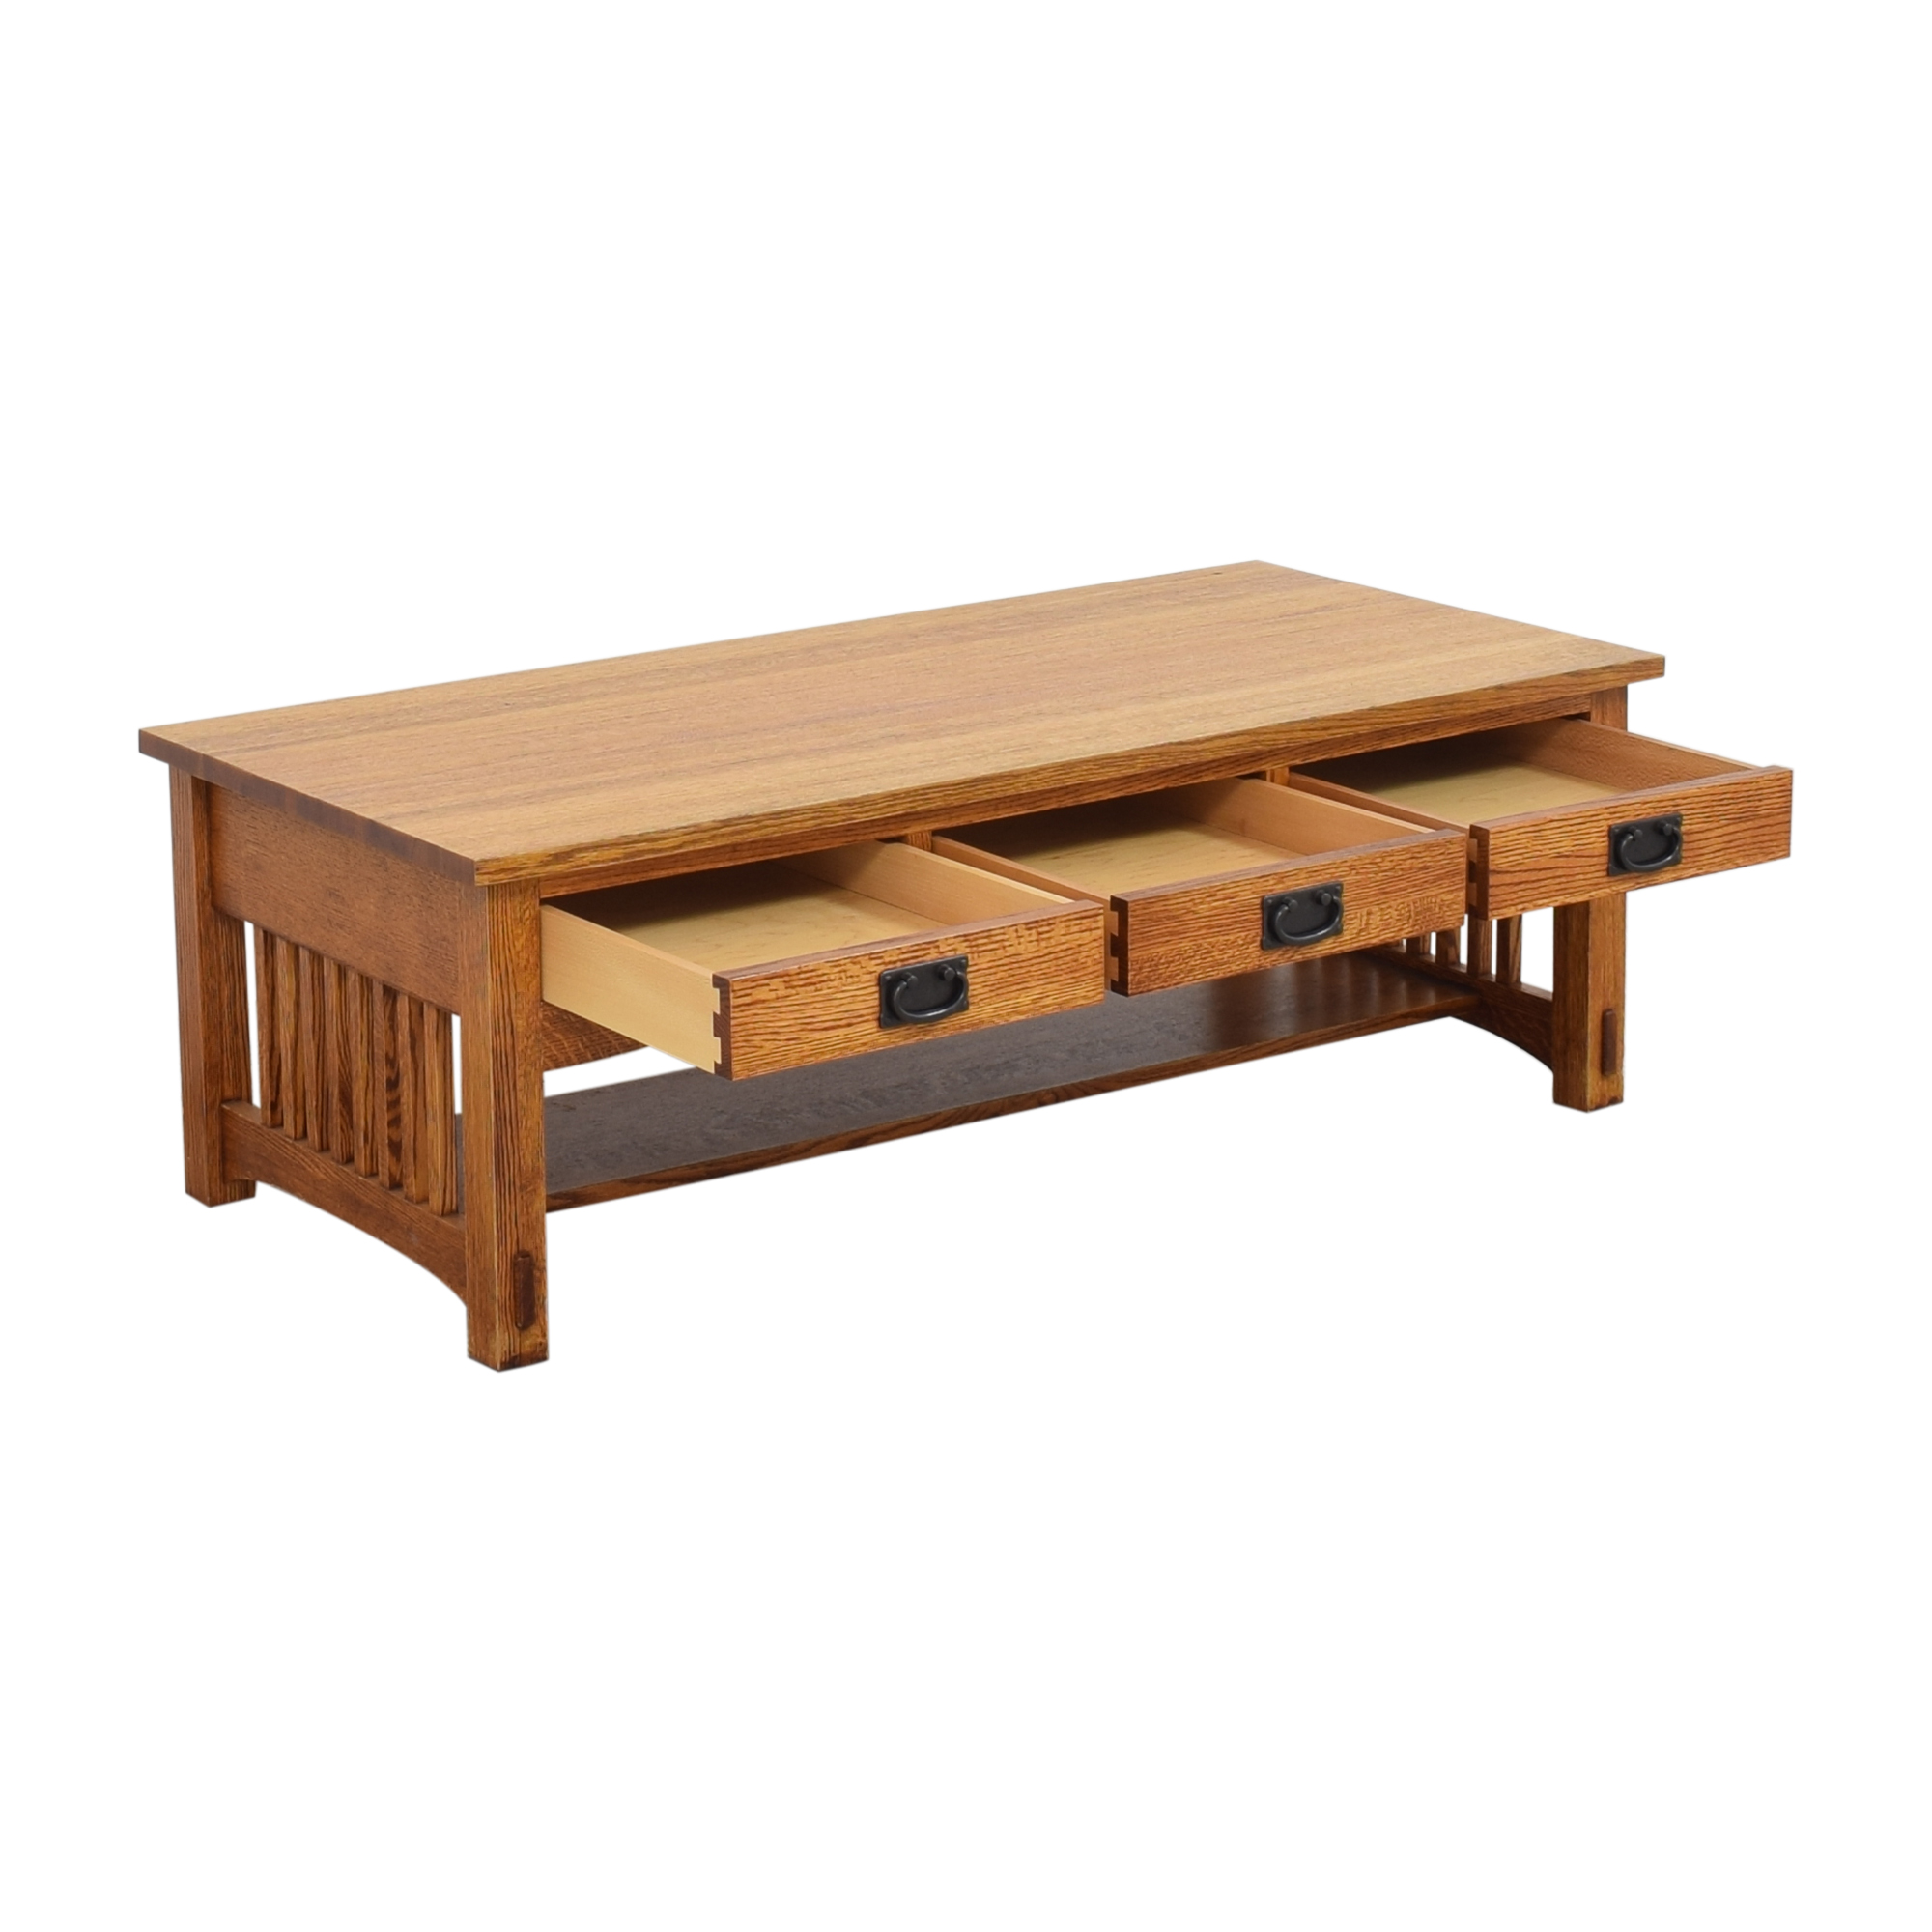 shop Royal Craftsman Mission Coffee Table Royal Craftsman Tables